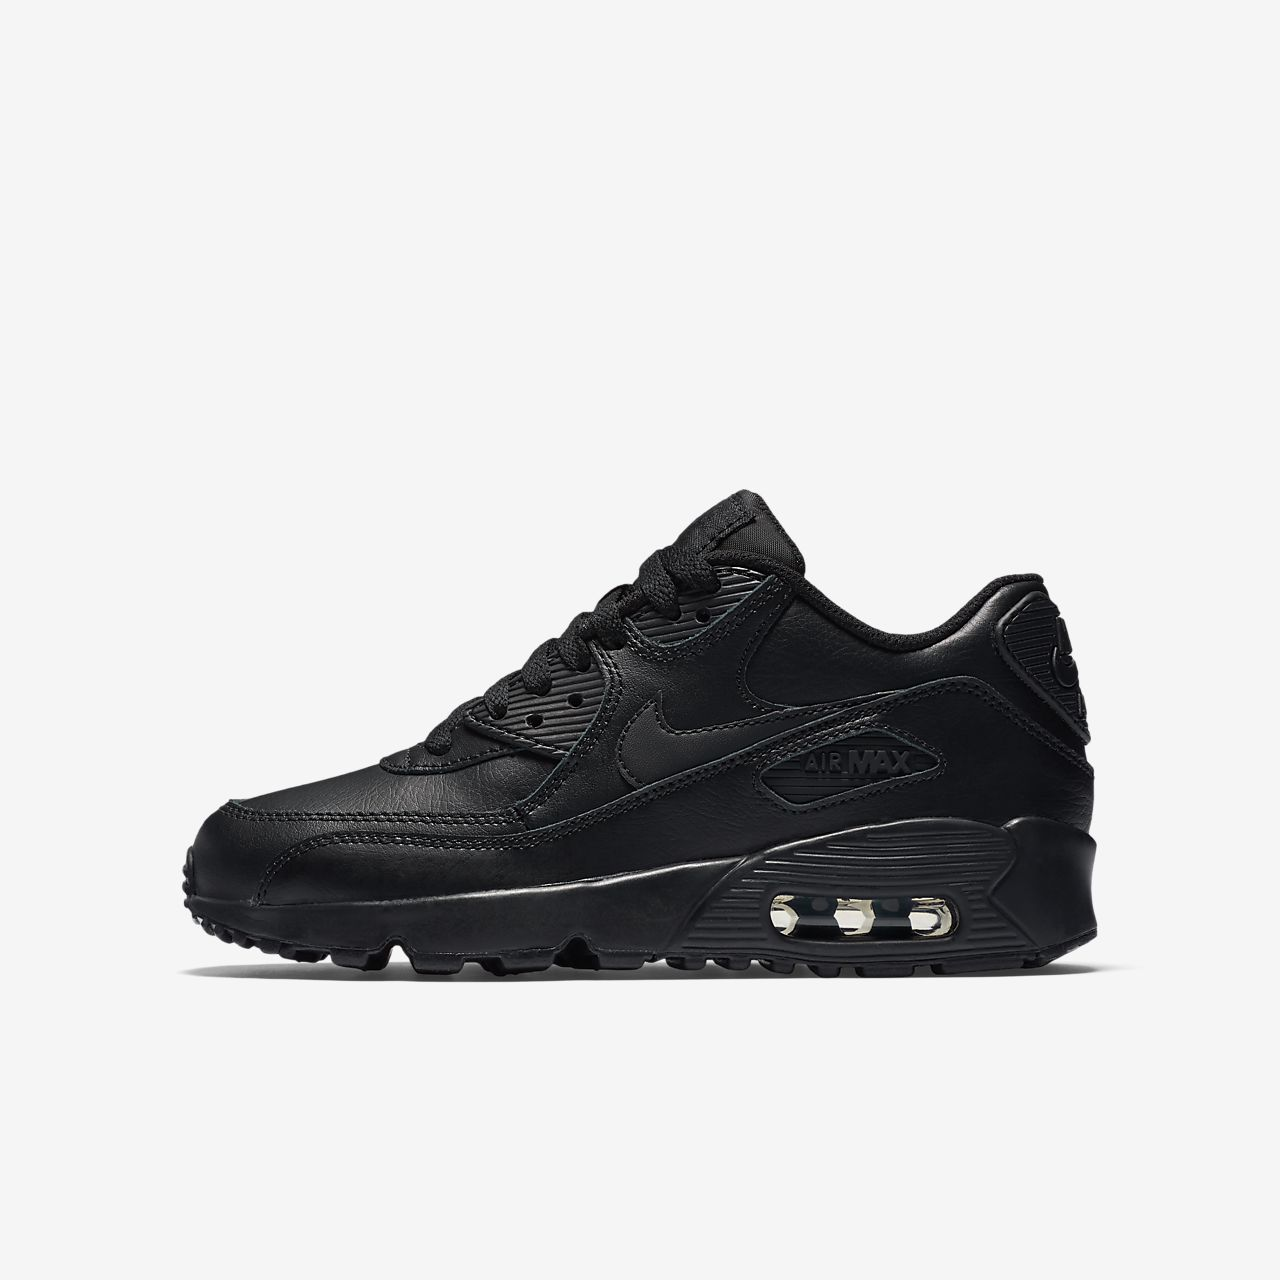 Sko Nike Air Max 90 Leather för ungdom